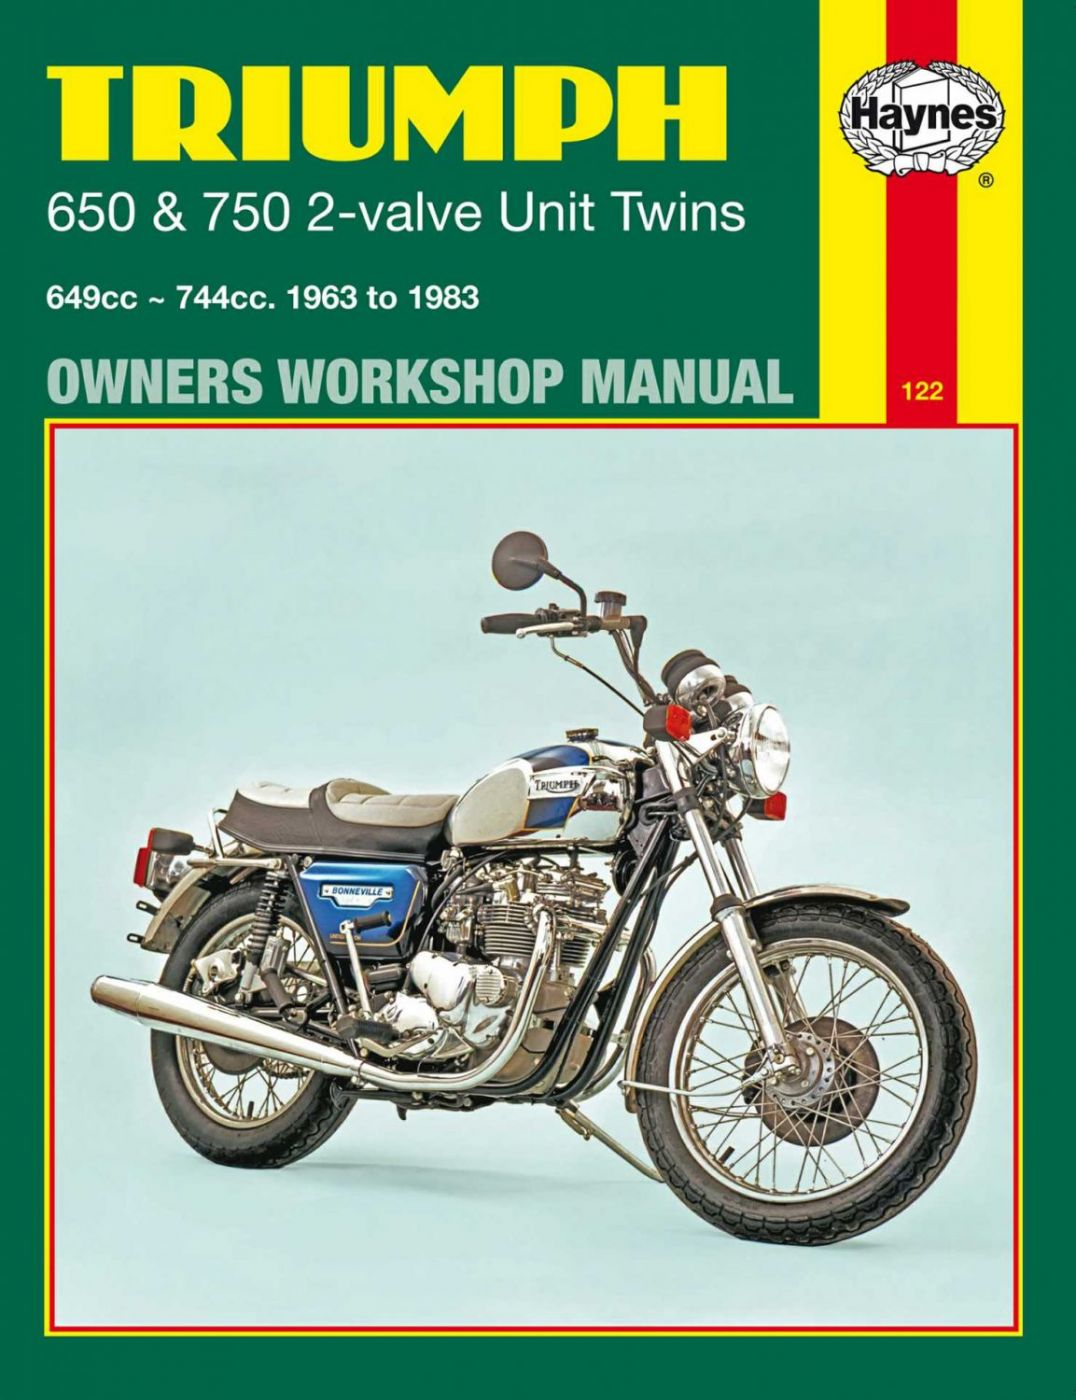 Haynes Manuals - 680122Y image